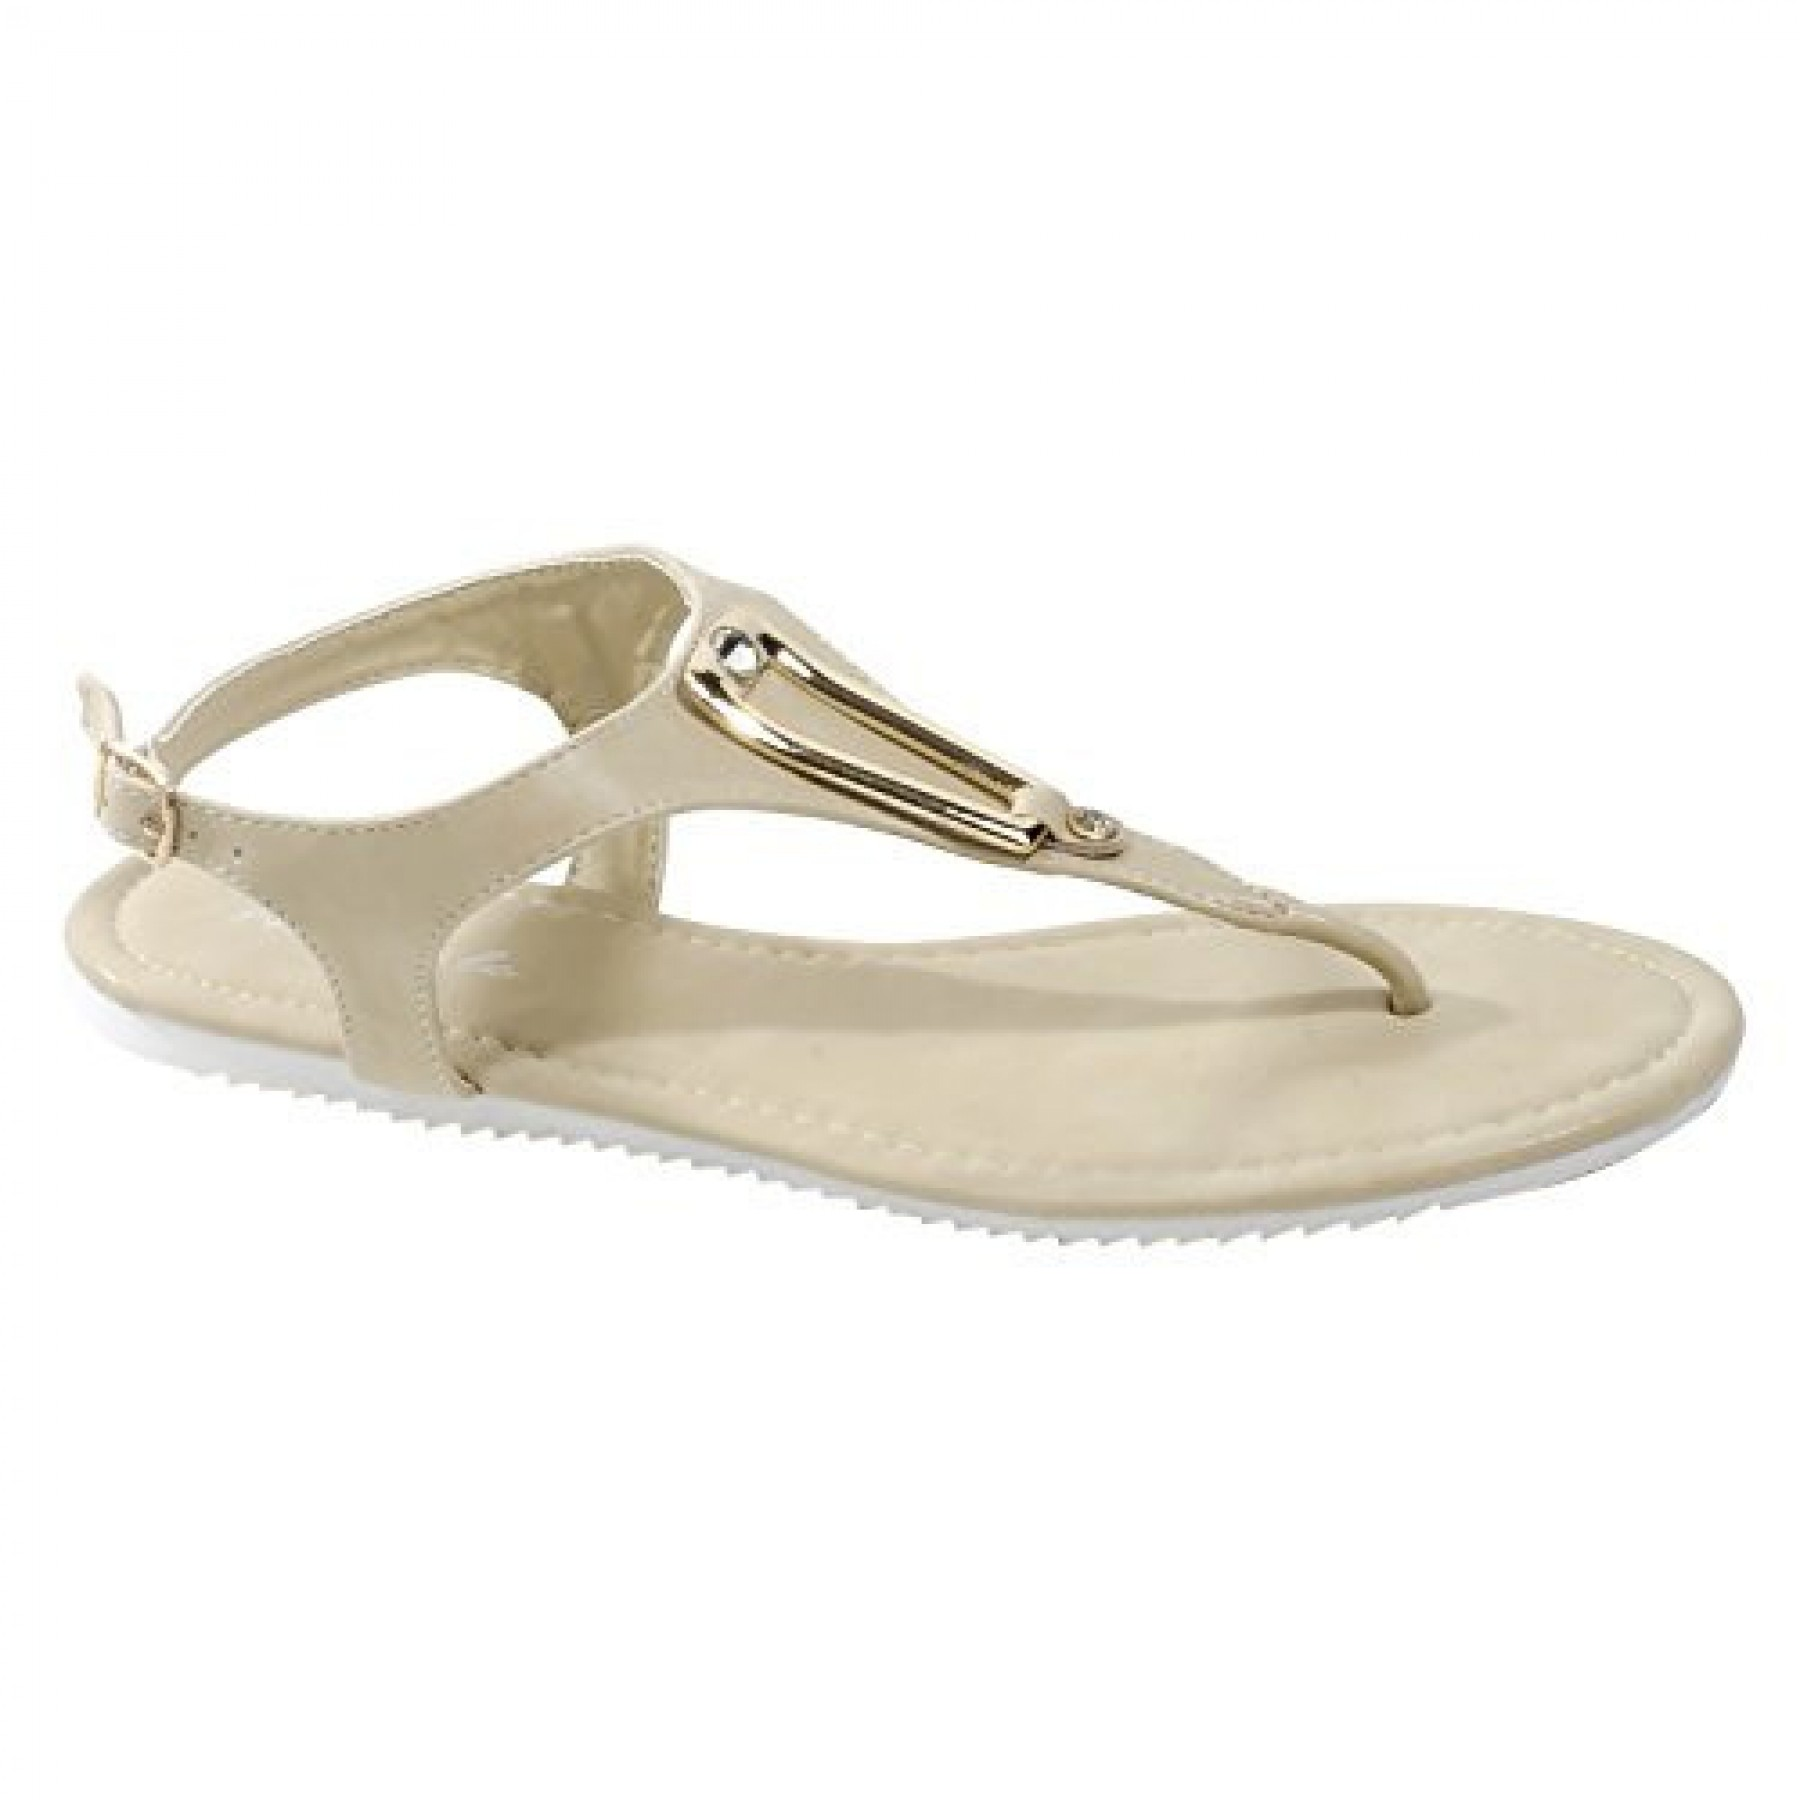 Women's Beige Manmade Monttank T-Strap Sandal with Gold-Tone Adornment